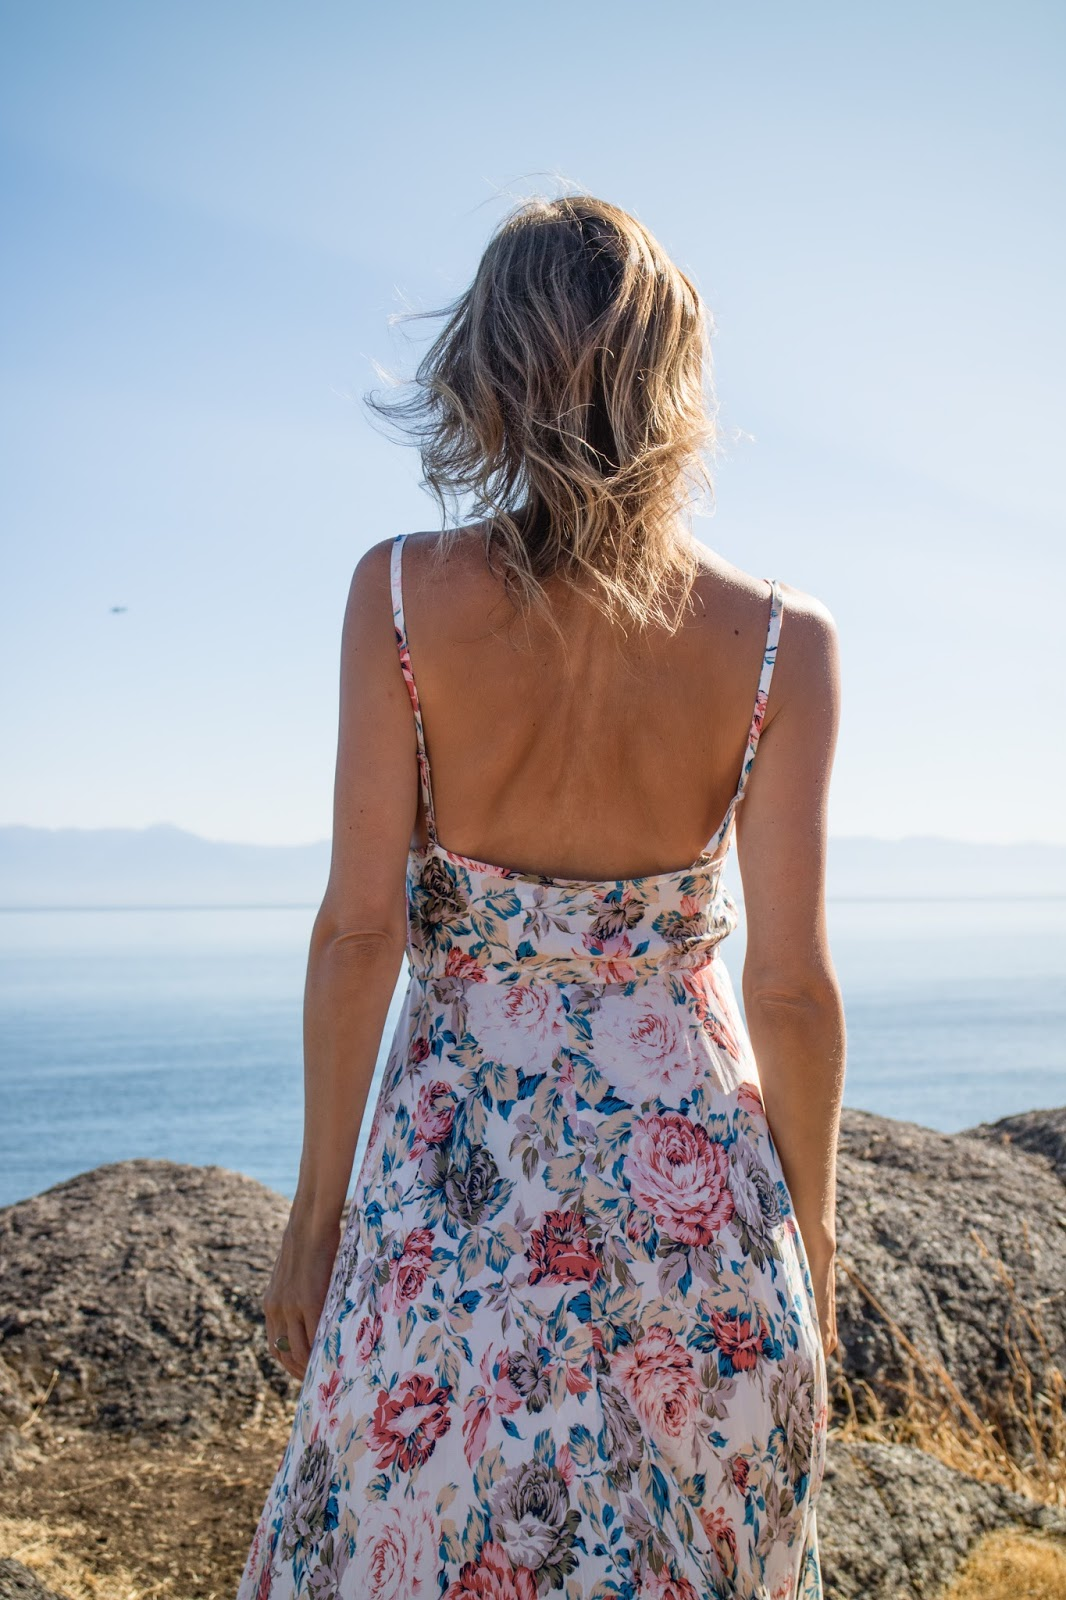 Fashion blogger, Alison Hutchinson, is wearing an Auguste Dress in Victoria, BC, Canada